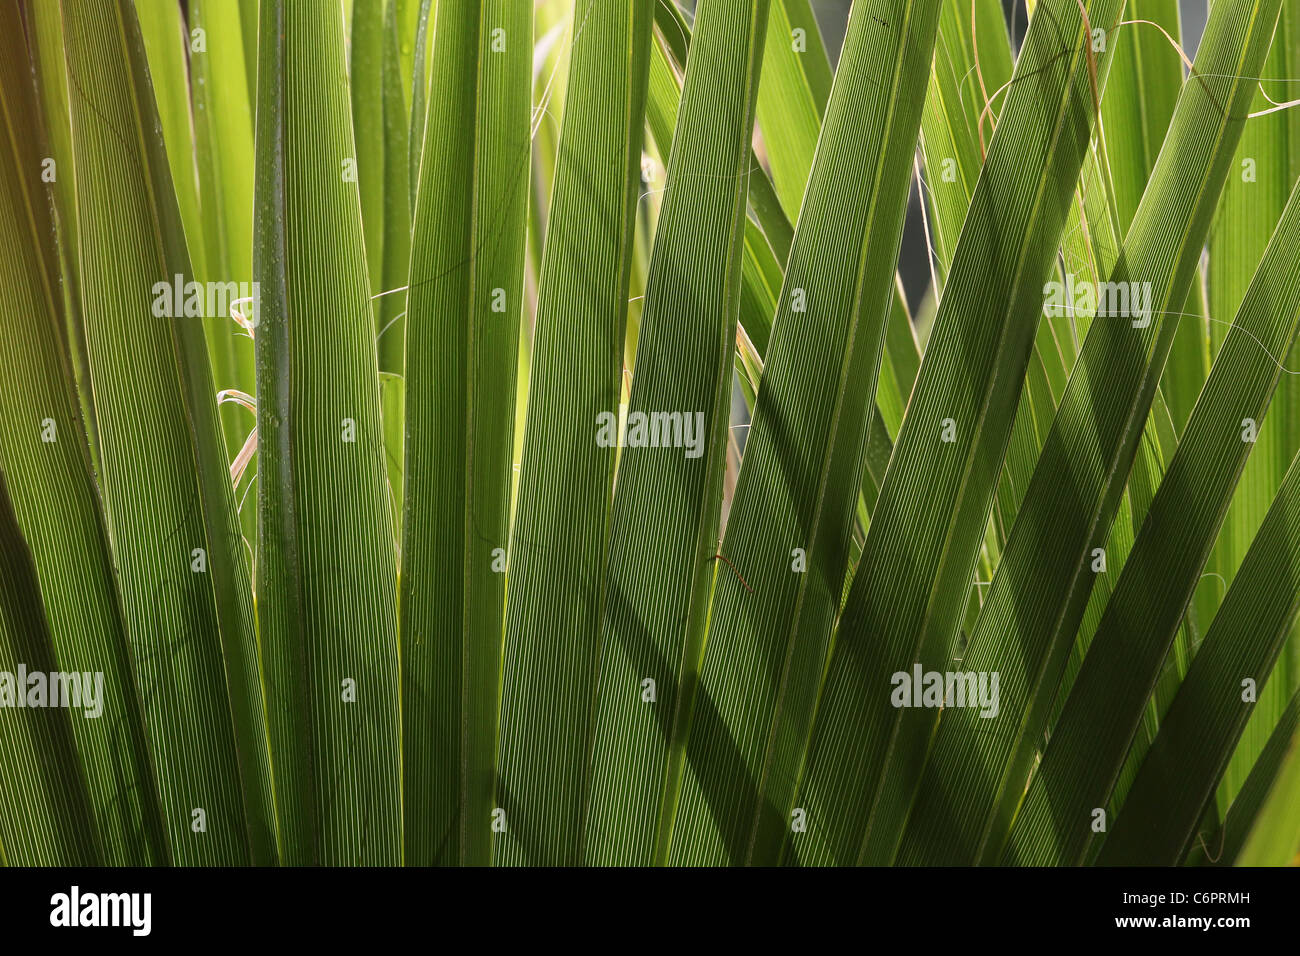 Sunlight shining through overlapping palm fronds - Stock Image